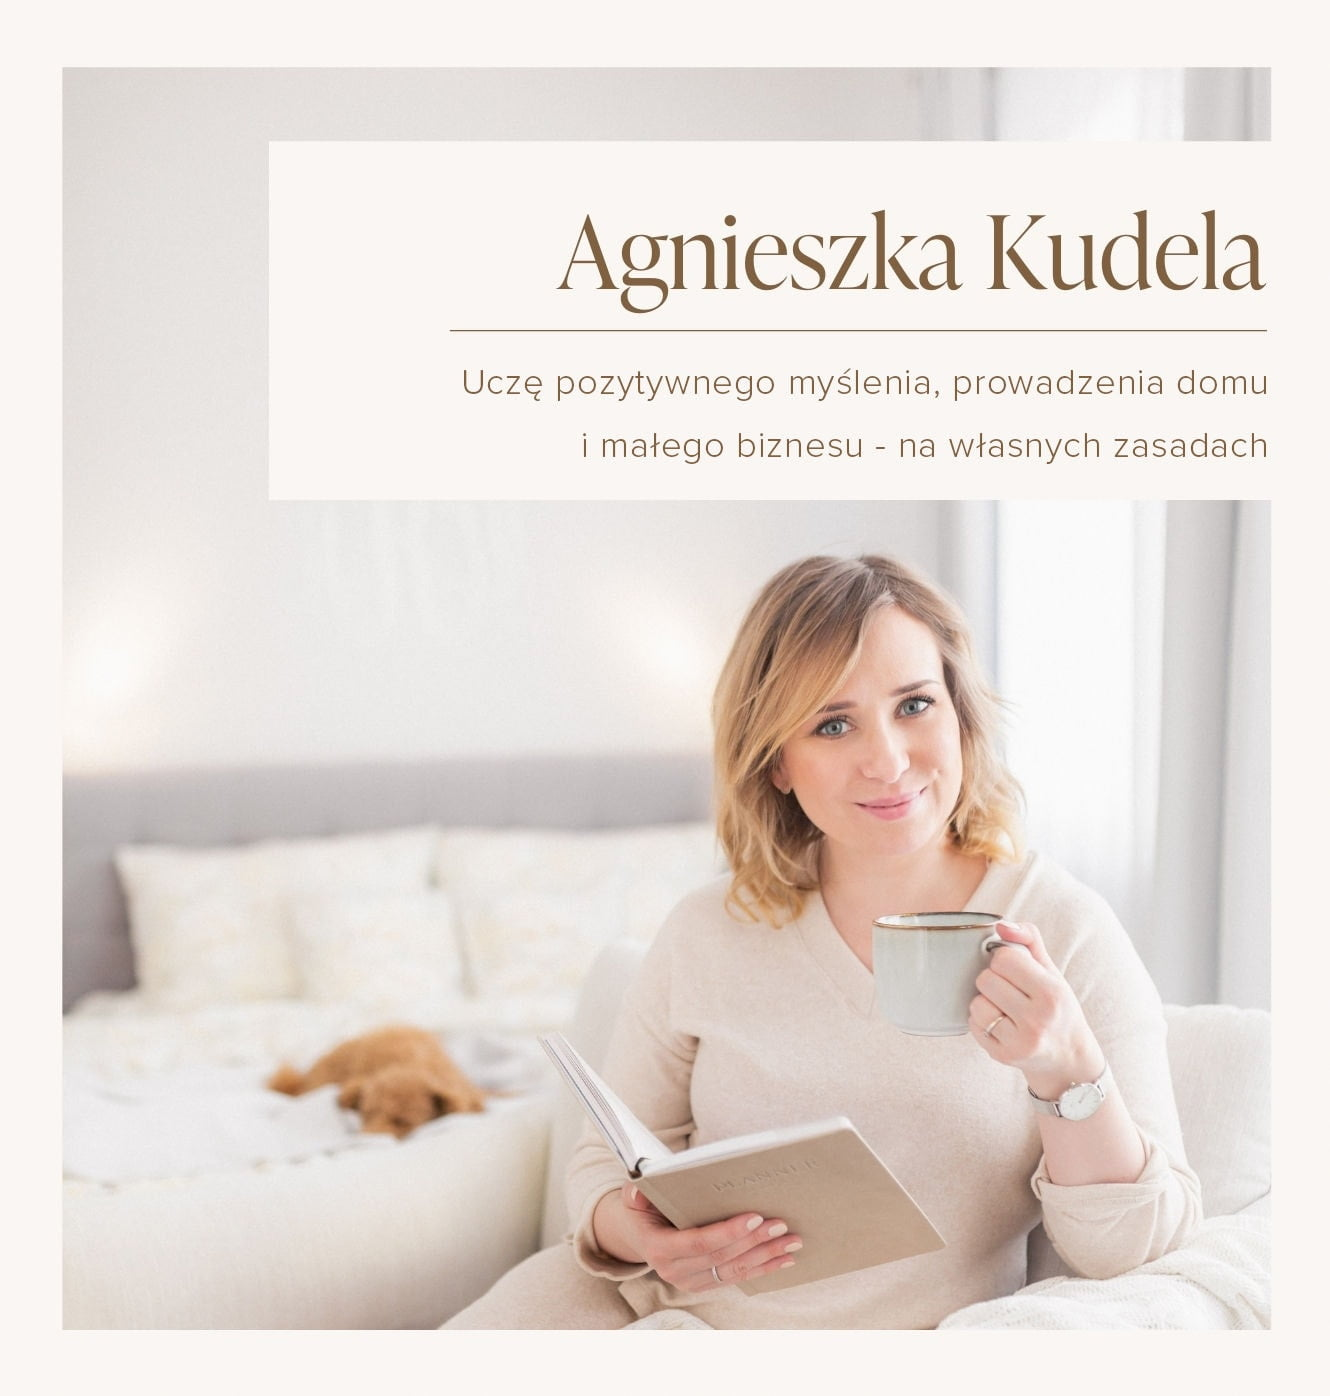 Agnieszka Kudela - I teach positive thinking